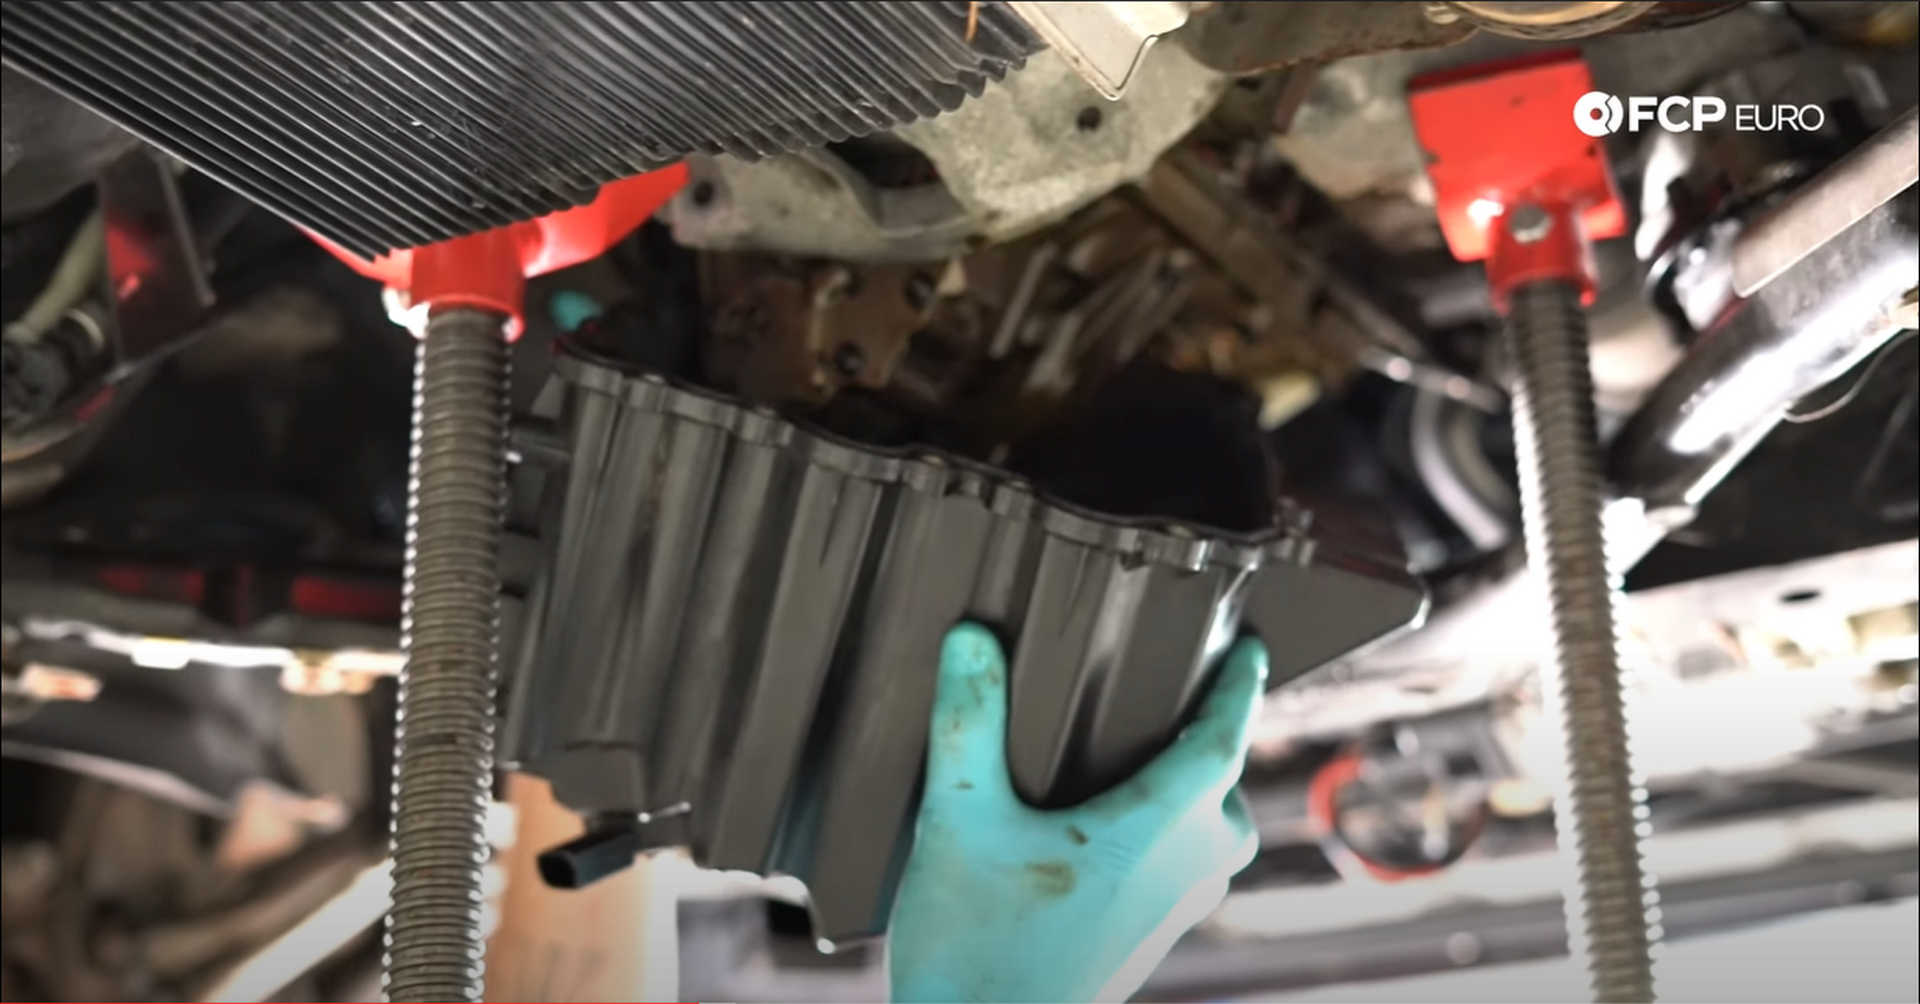 DIY BMW N20 Timing Chain installing the oil pan